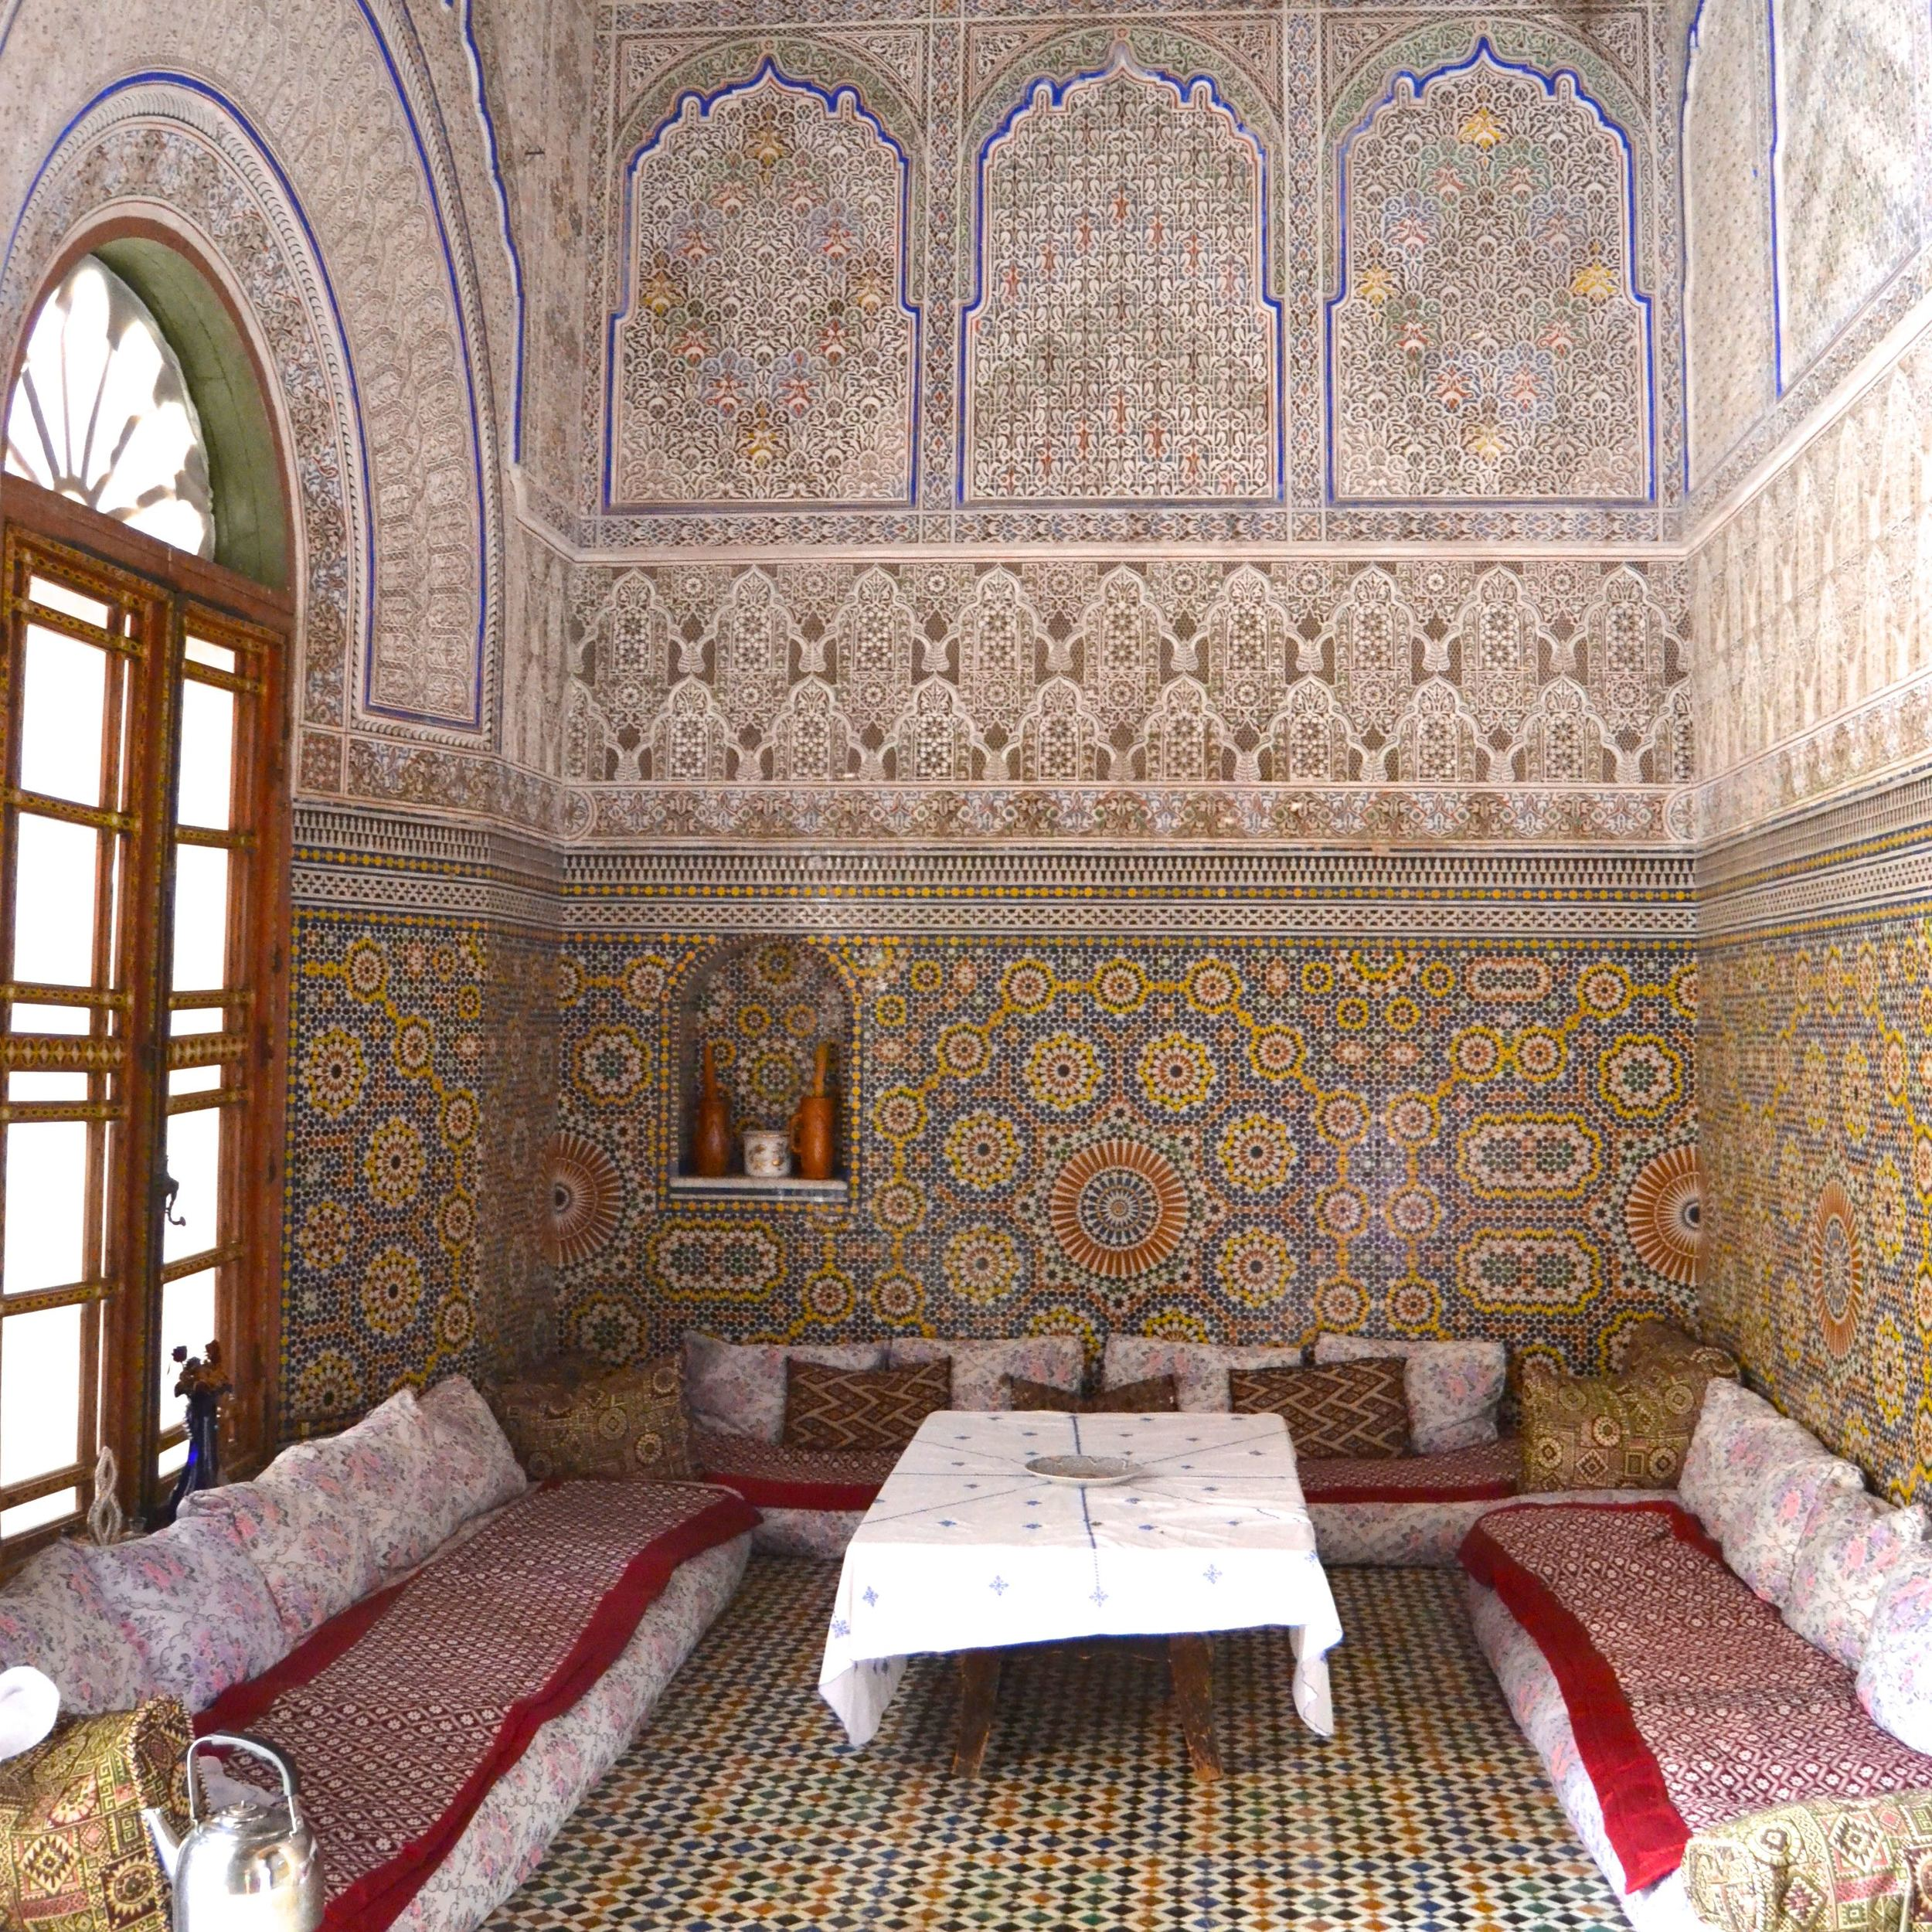 The Glaoui Palace Living Room